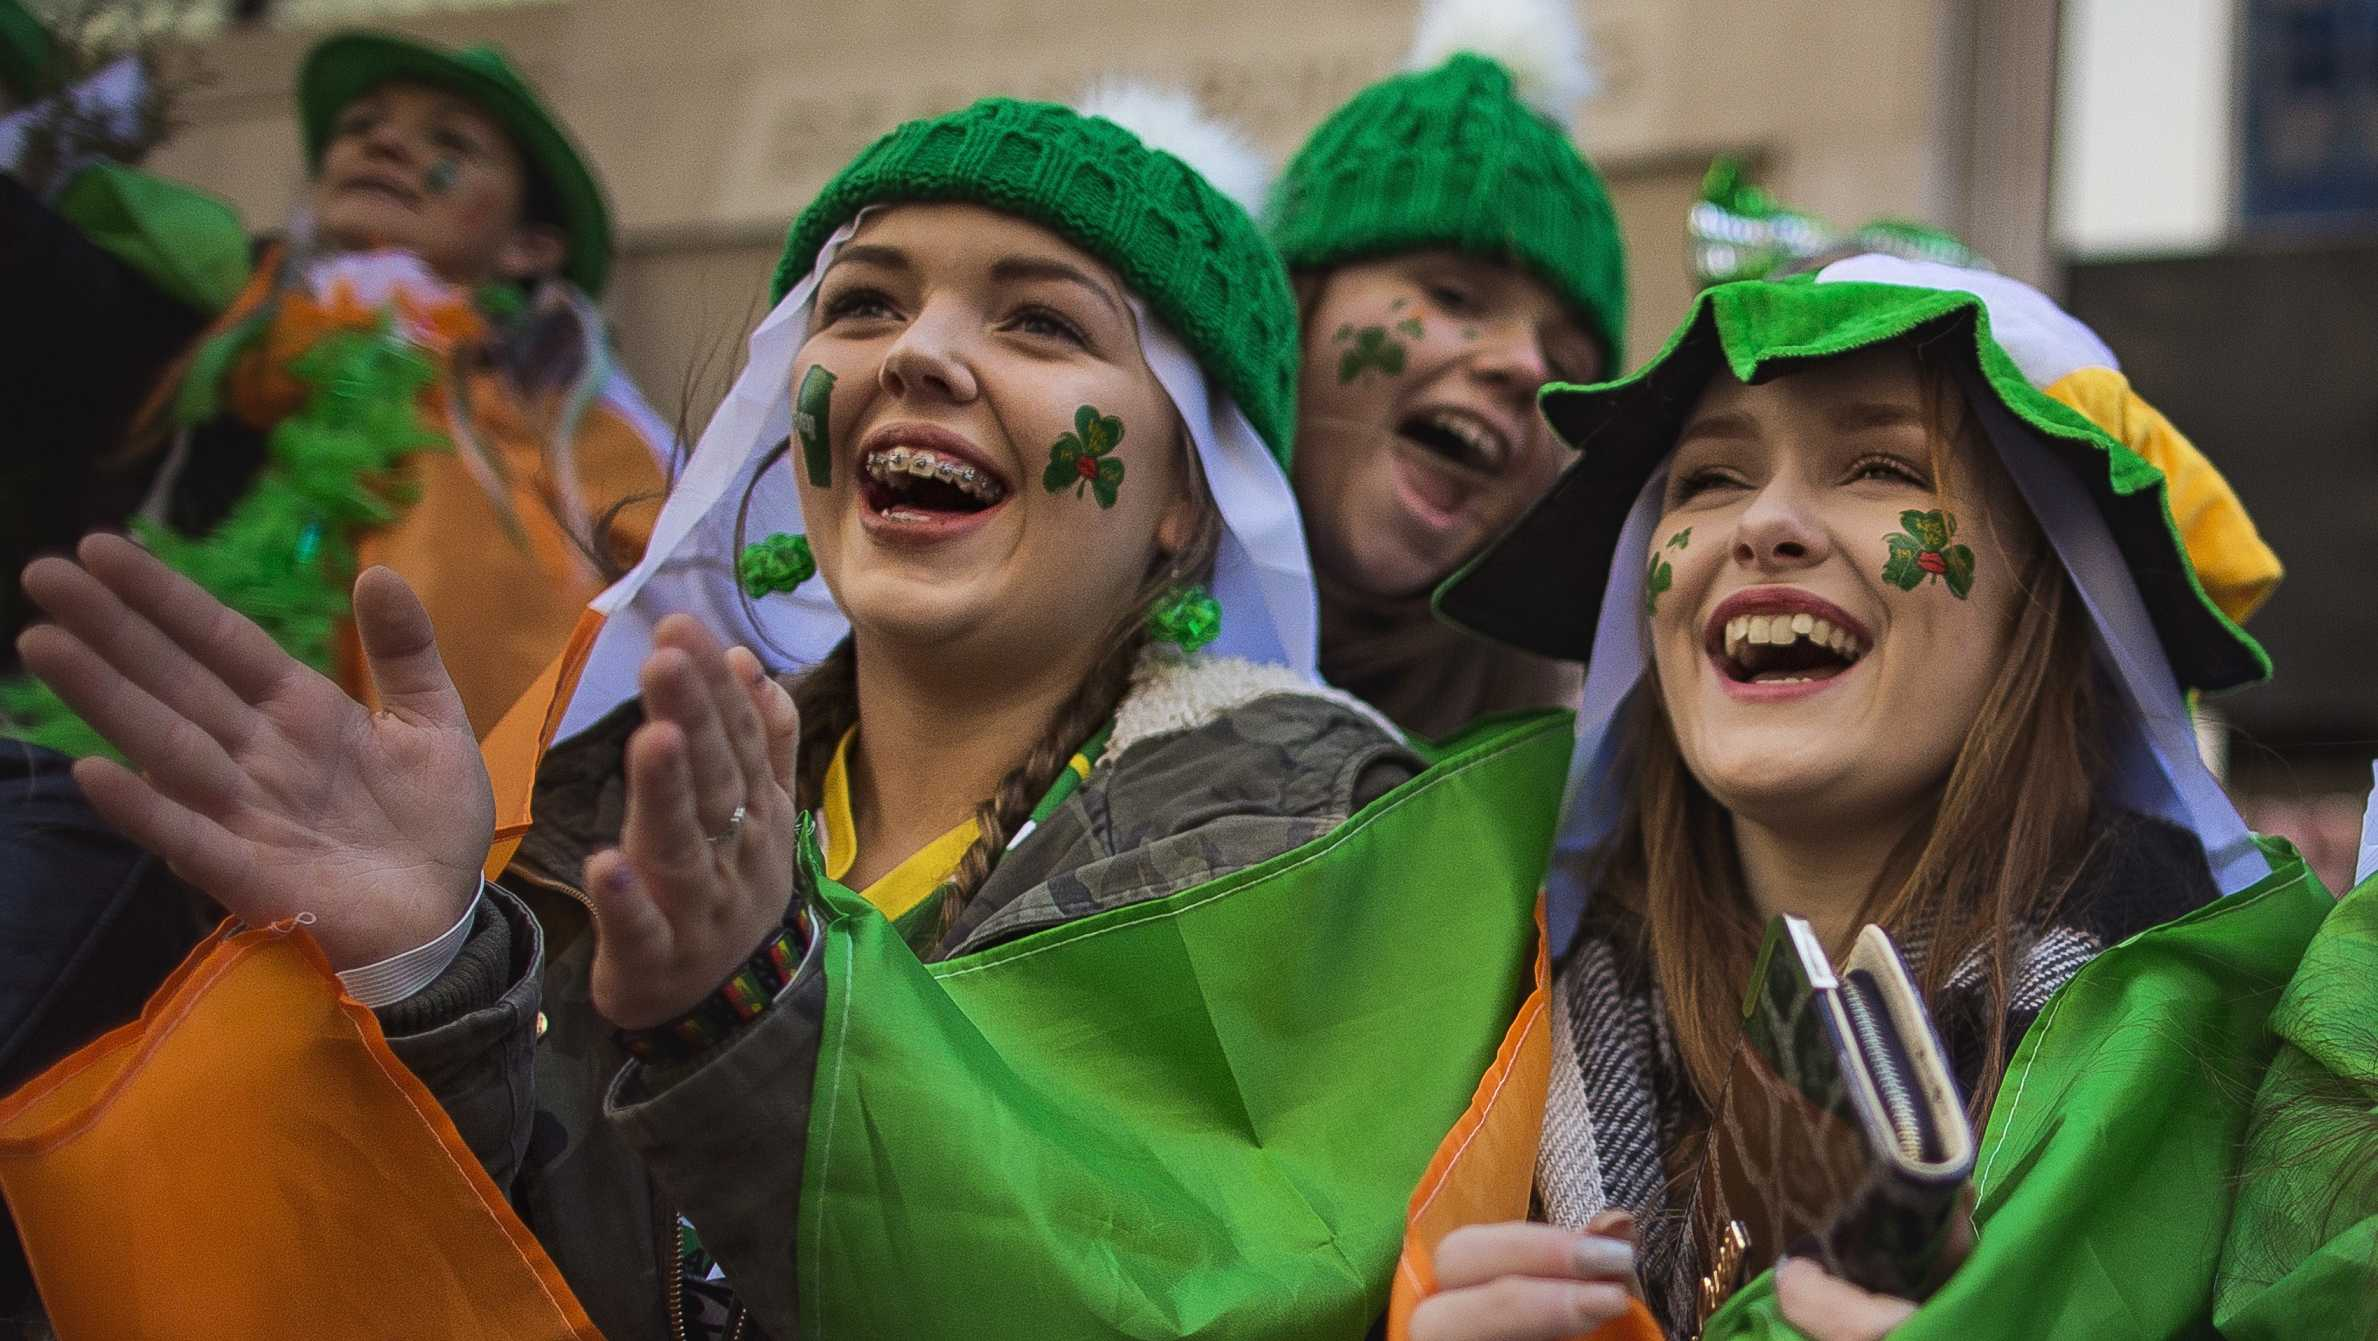 Spectators watch as revelers march up Fifth Avenue during last year's St. Patrick's Day Parade in New York City.